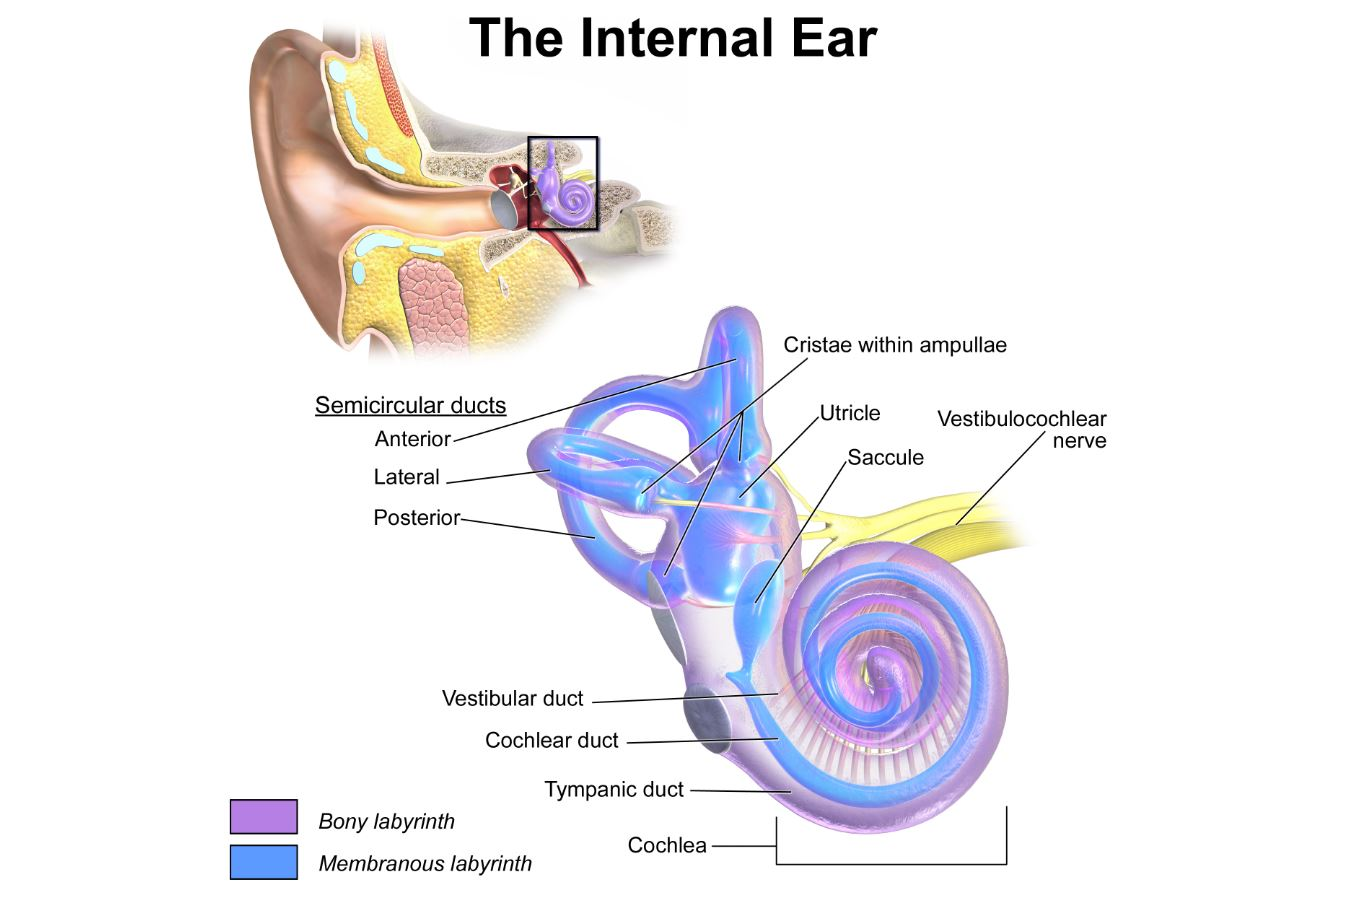 """This diagram of the ear shows the vestibular nerve, which is central to our balance - Image Credit: Blausen.com staff (2014). """" Medical gallery of Blausen Medical 2014 """".  WikiJournal of Medicine   1  (2).  DOI : 10.15347/wjm/2014.010 .  ISSN  2002-4436"""